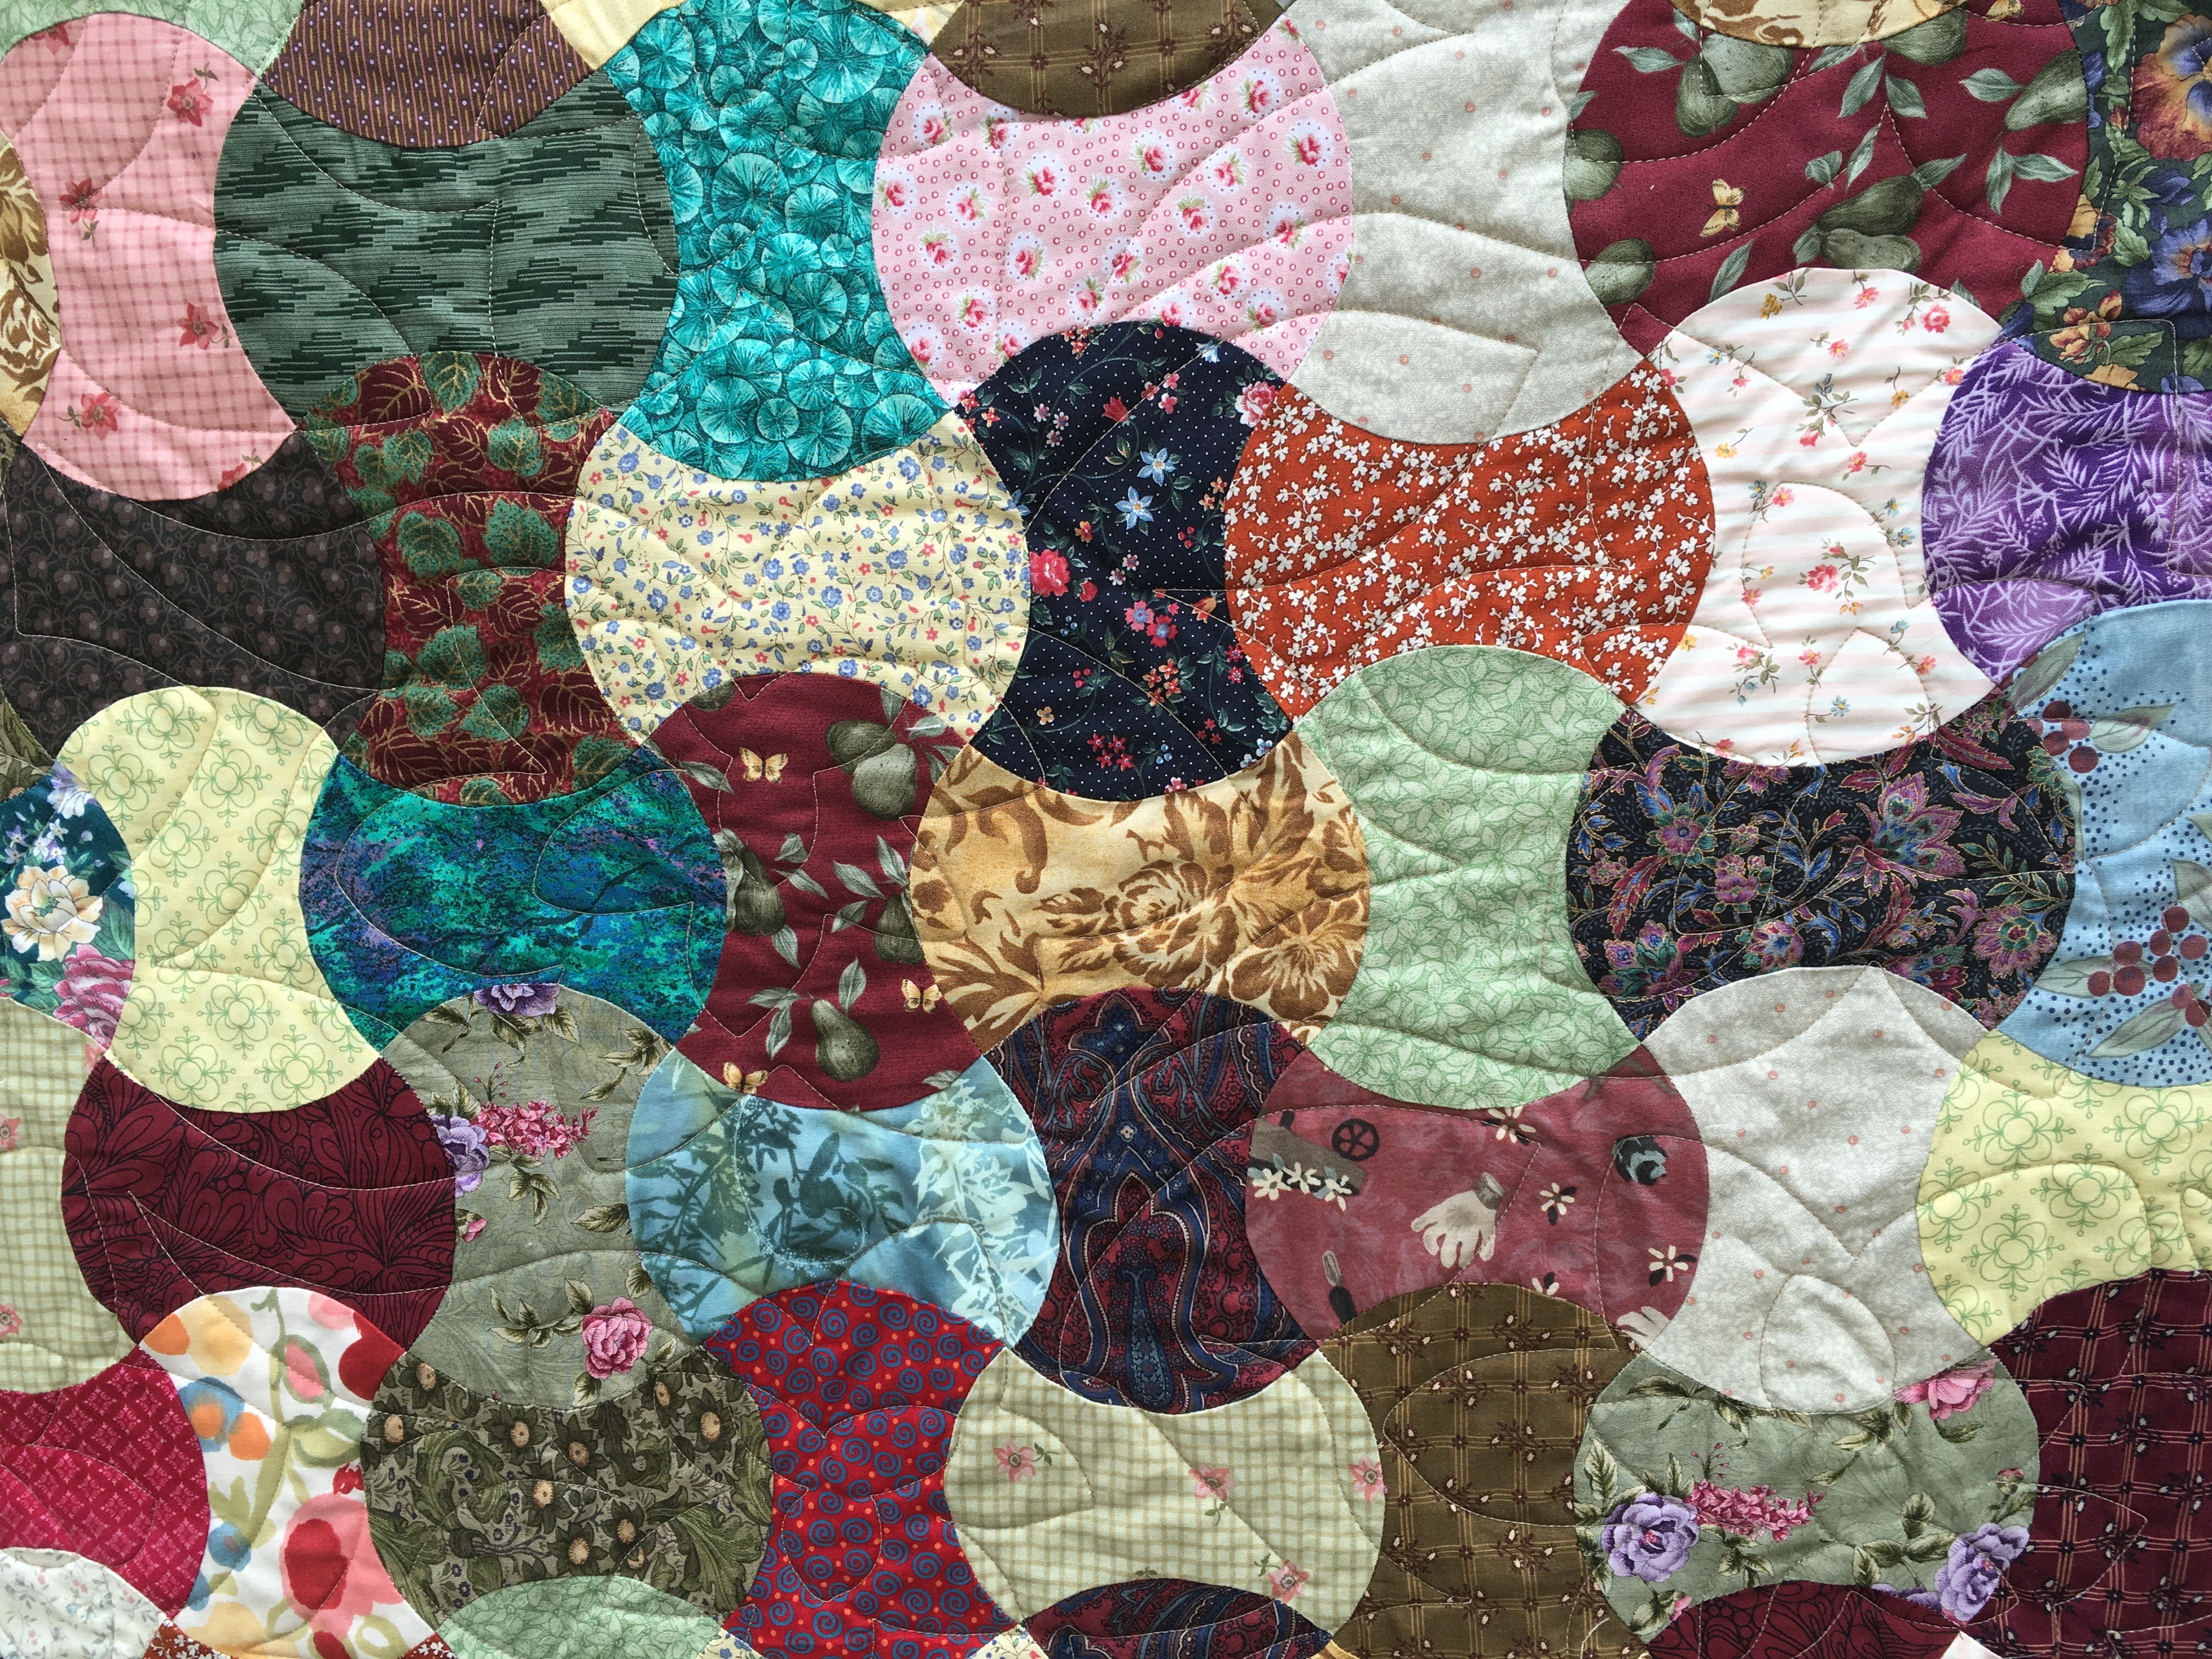 Quilt by Cheryl Rogers